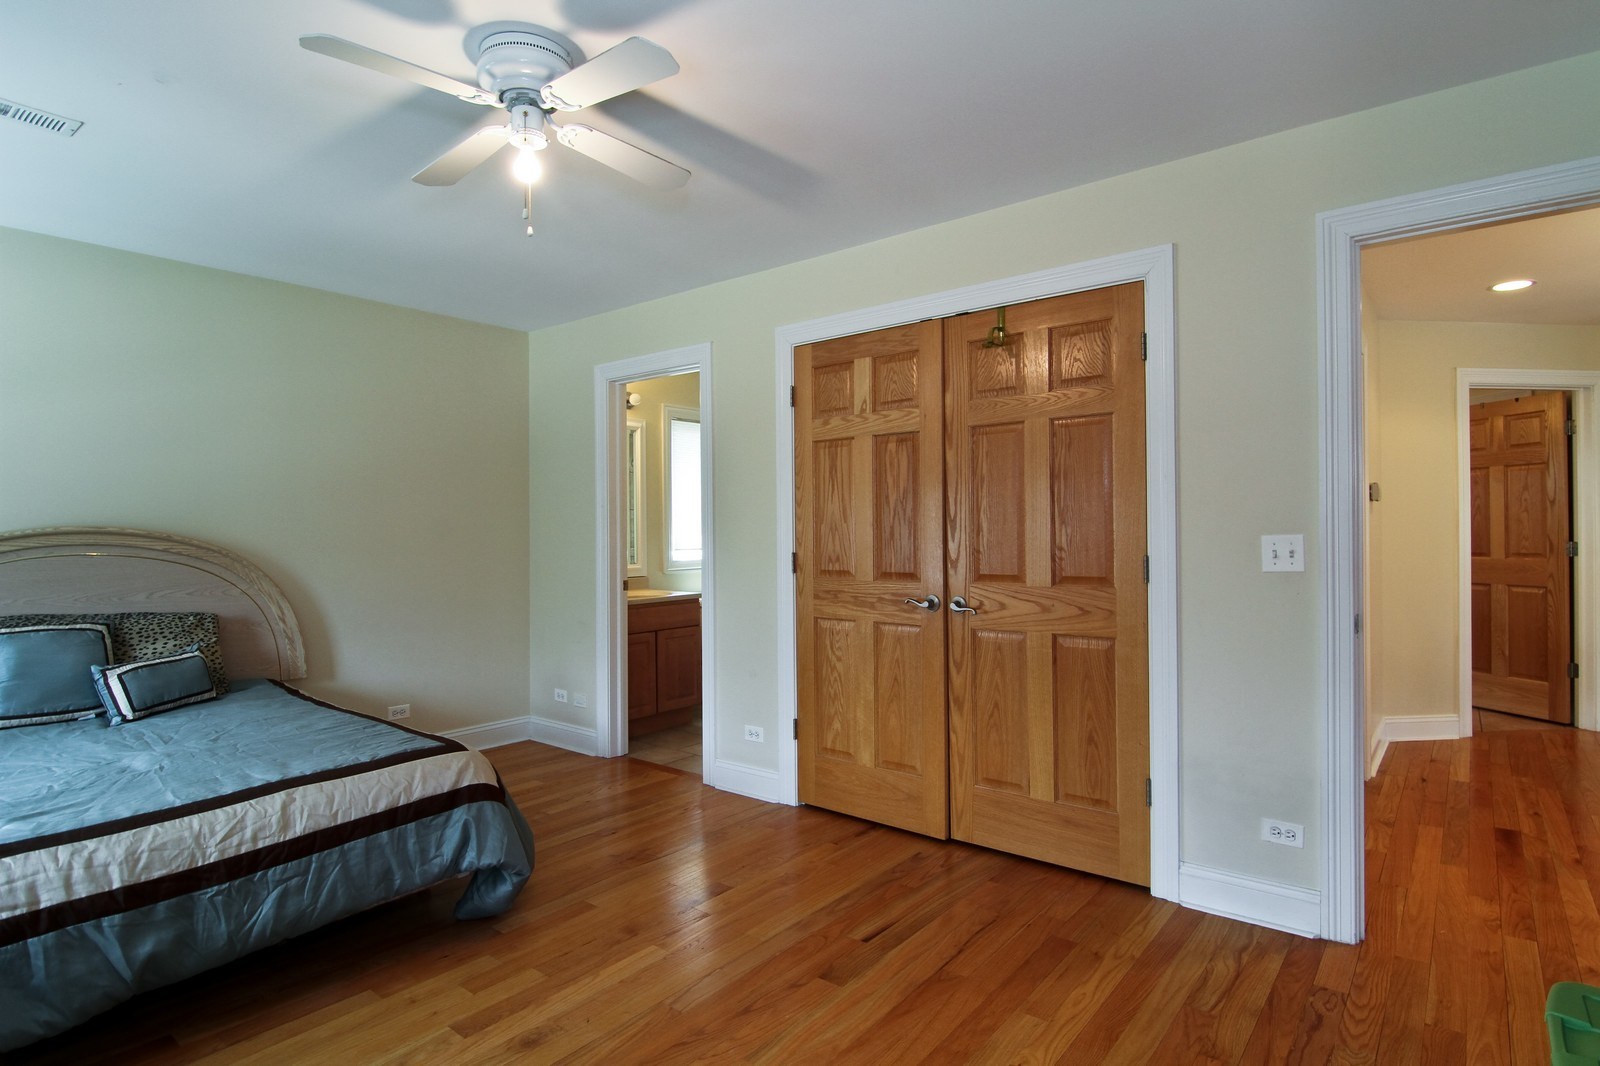 Real Estate Photography - 5626 Chase Ave, Downers Grove, IL, 60516 - Bedroom